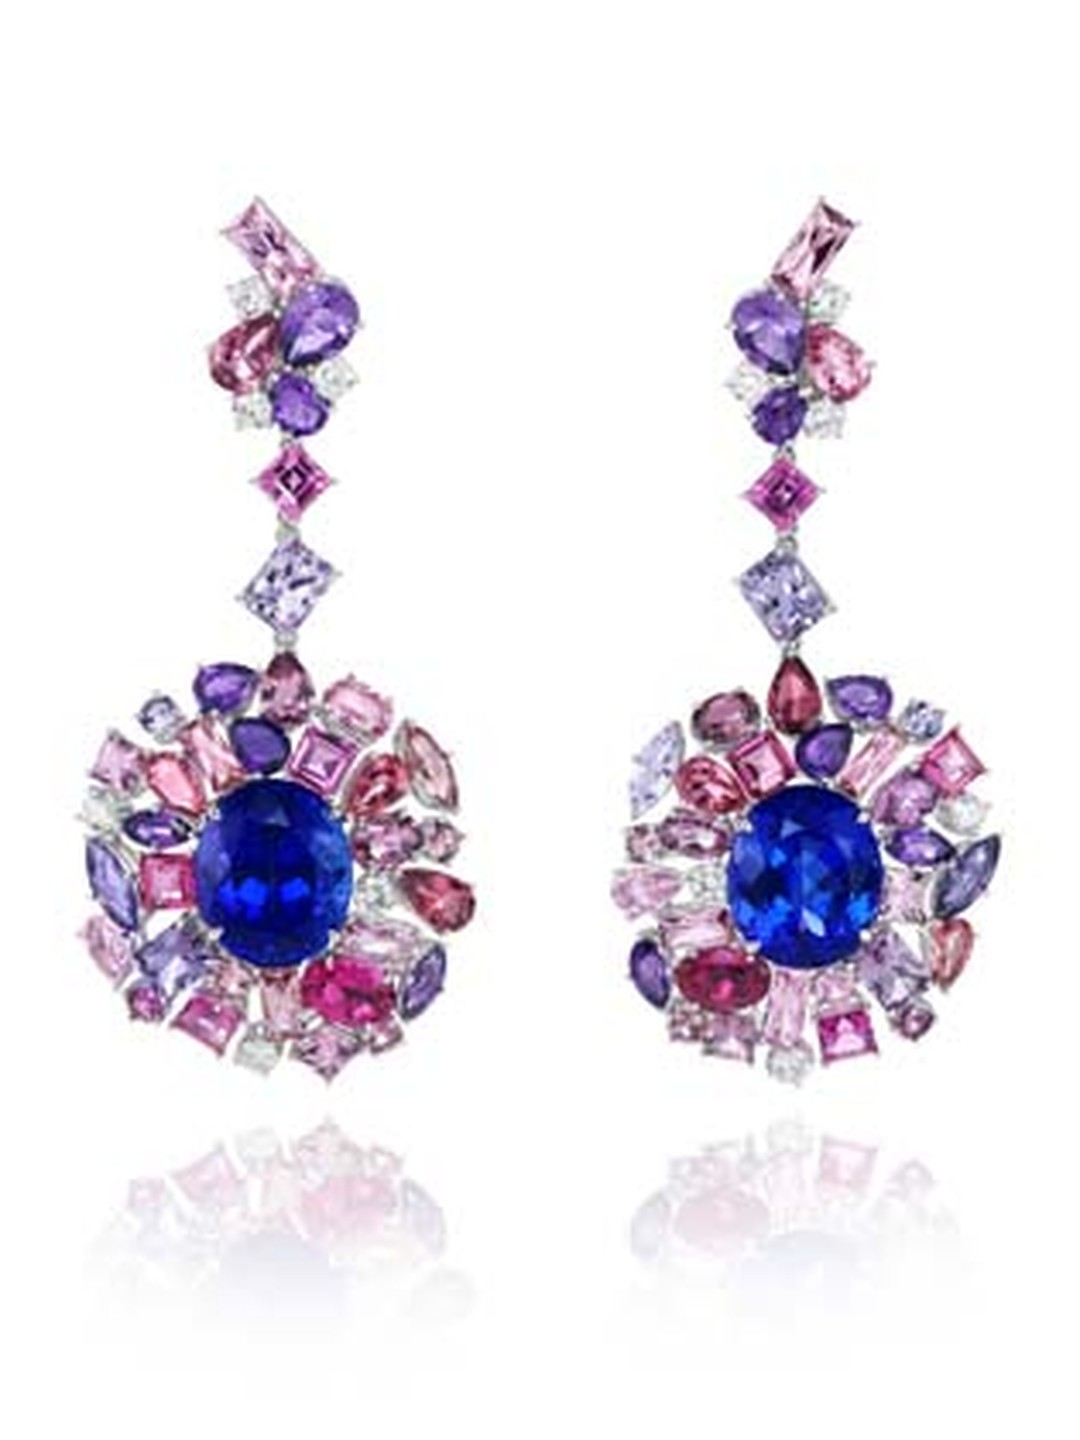 849374-1001 Tanzanite Earrings  from the Red Carpet Collection 2013.jpg